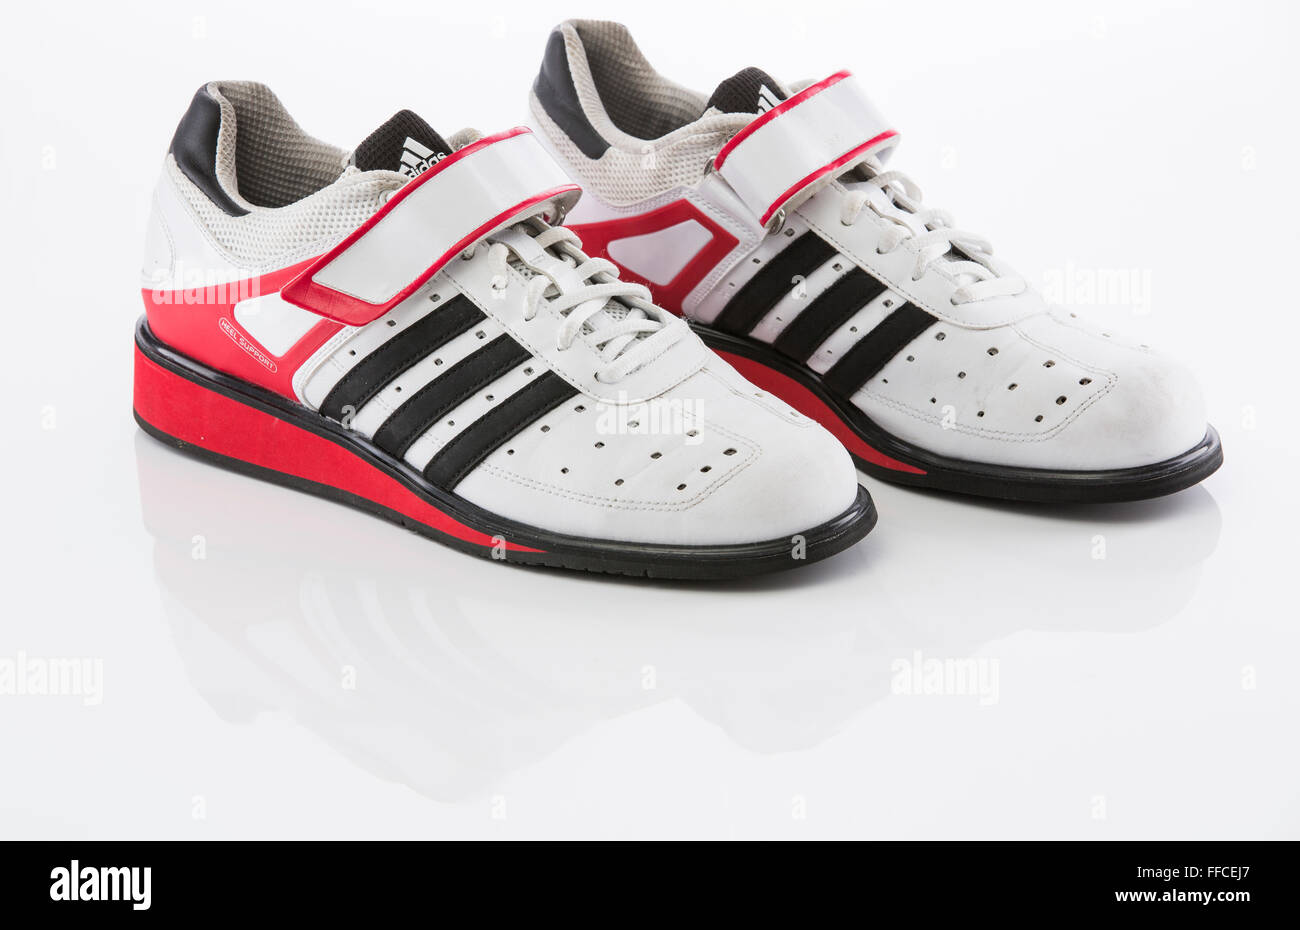 Adidas Olympic weightlifting shoes on a white background with a ...